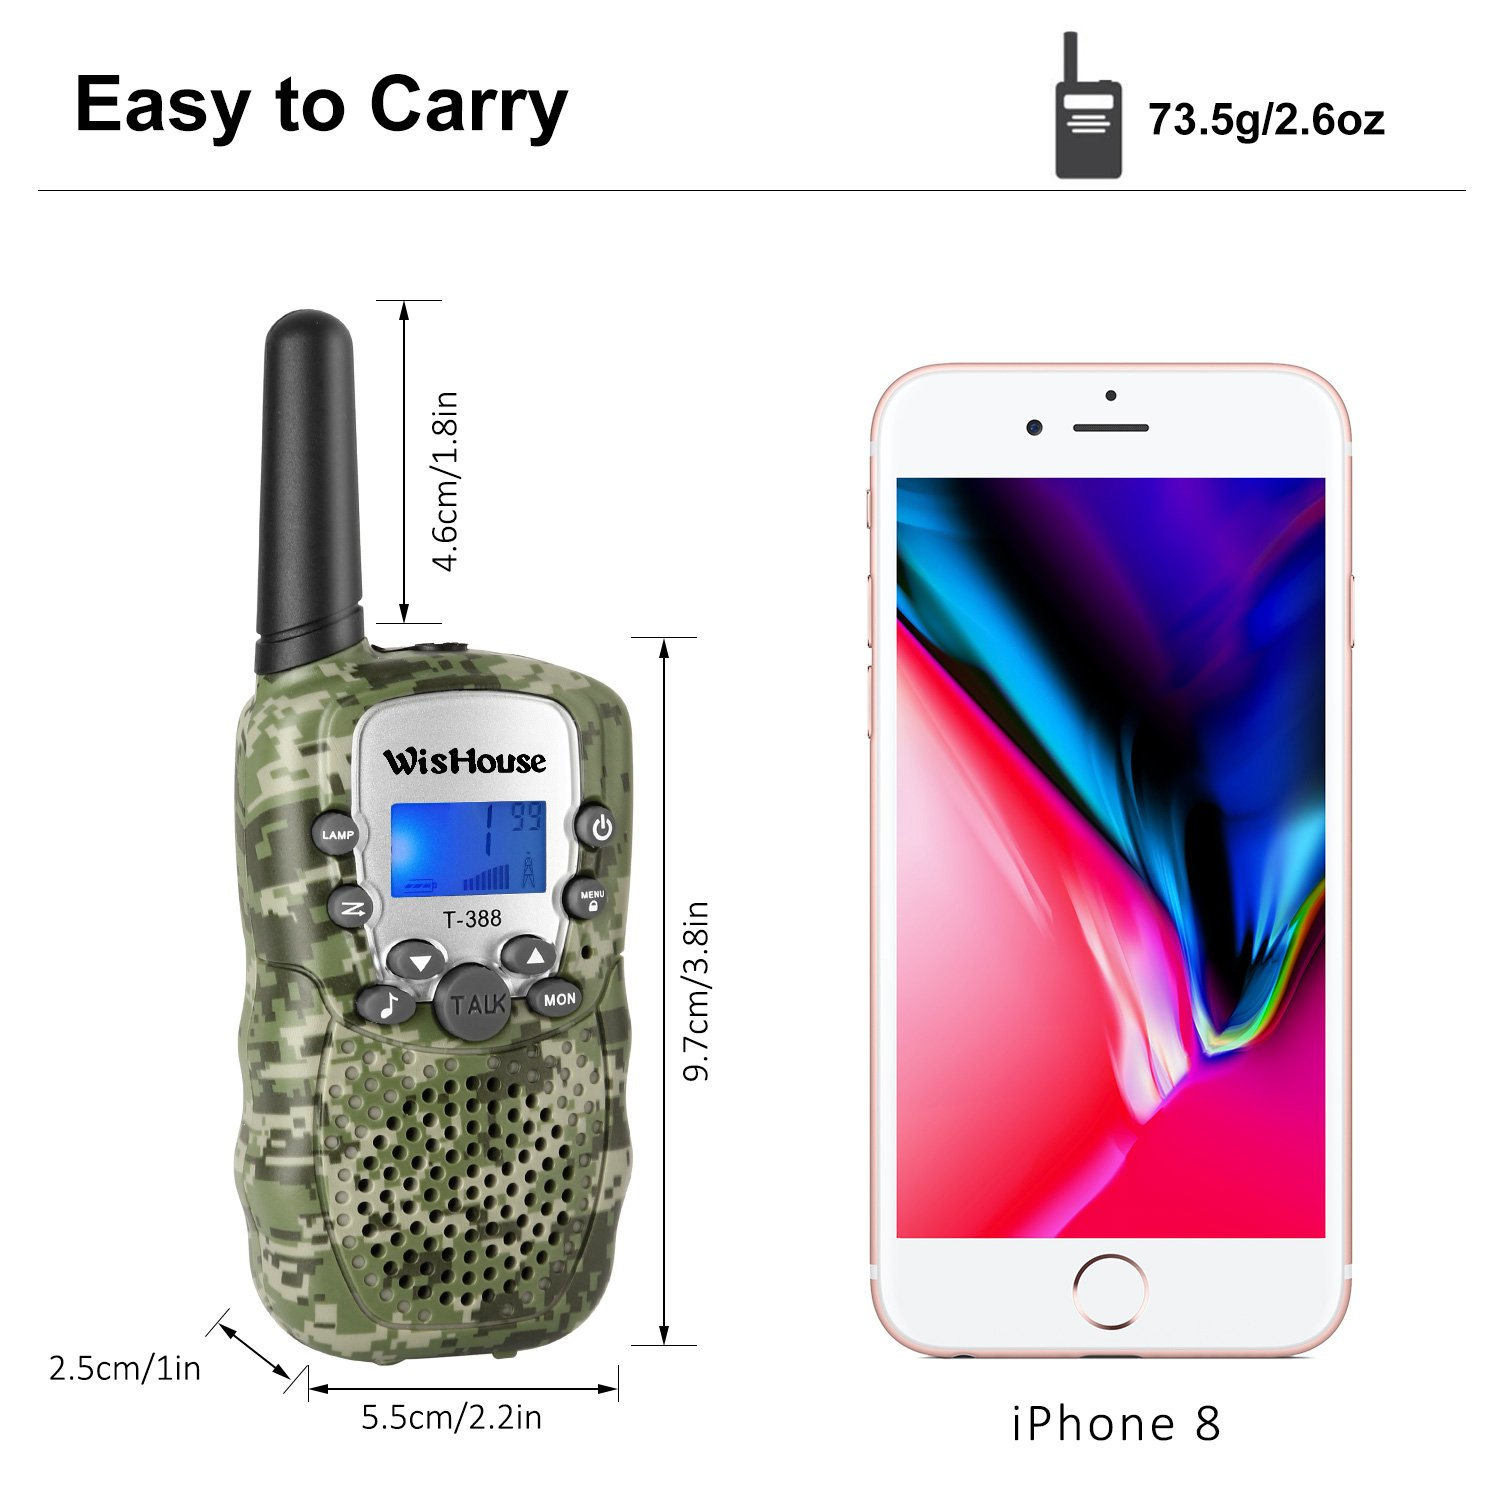 Wishouse Walkie Talkies for Kids,Popular Toys for Boys and Girls Best Handheld Woki Toki with Flashlight,License free Kids Survival Gear for Hunting and Outdoor Adventure(T388 Camouflage 2 Pack) by Wishouse (Image #6)